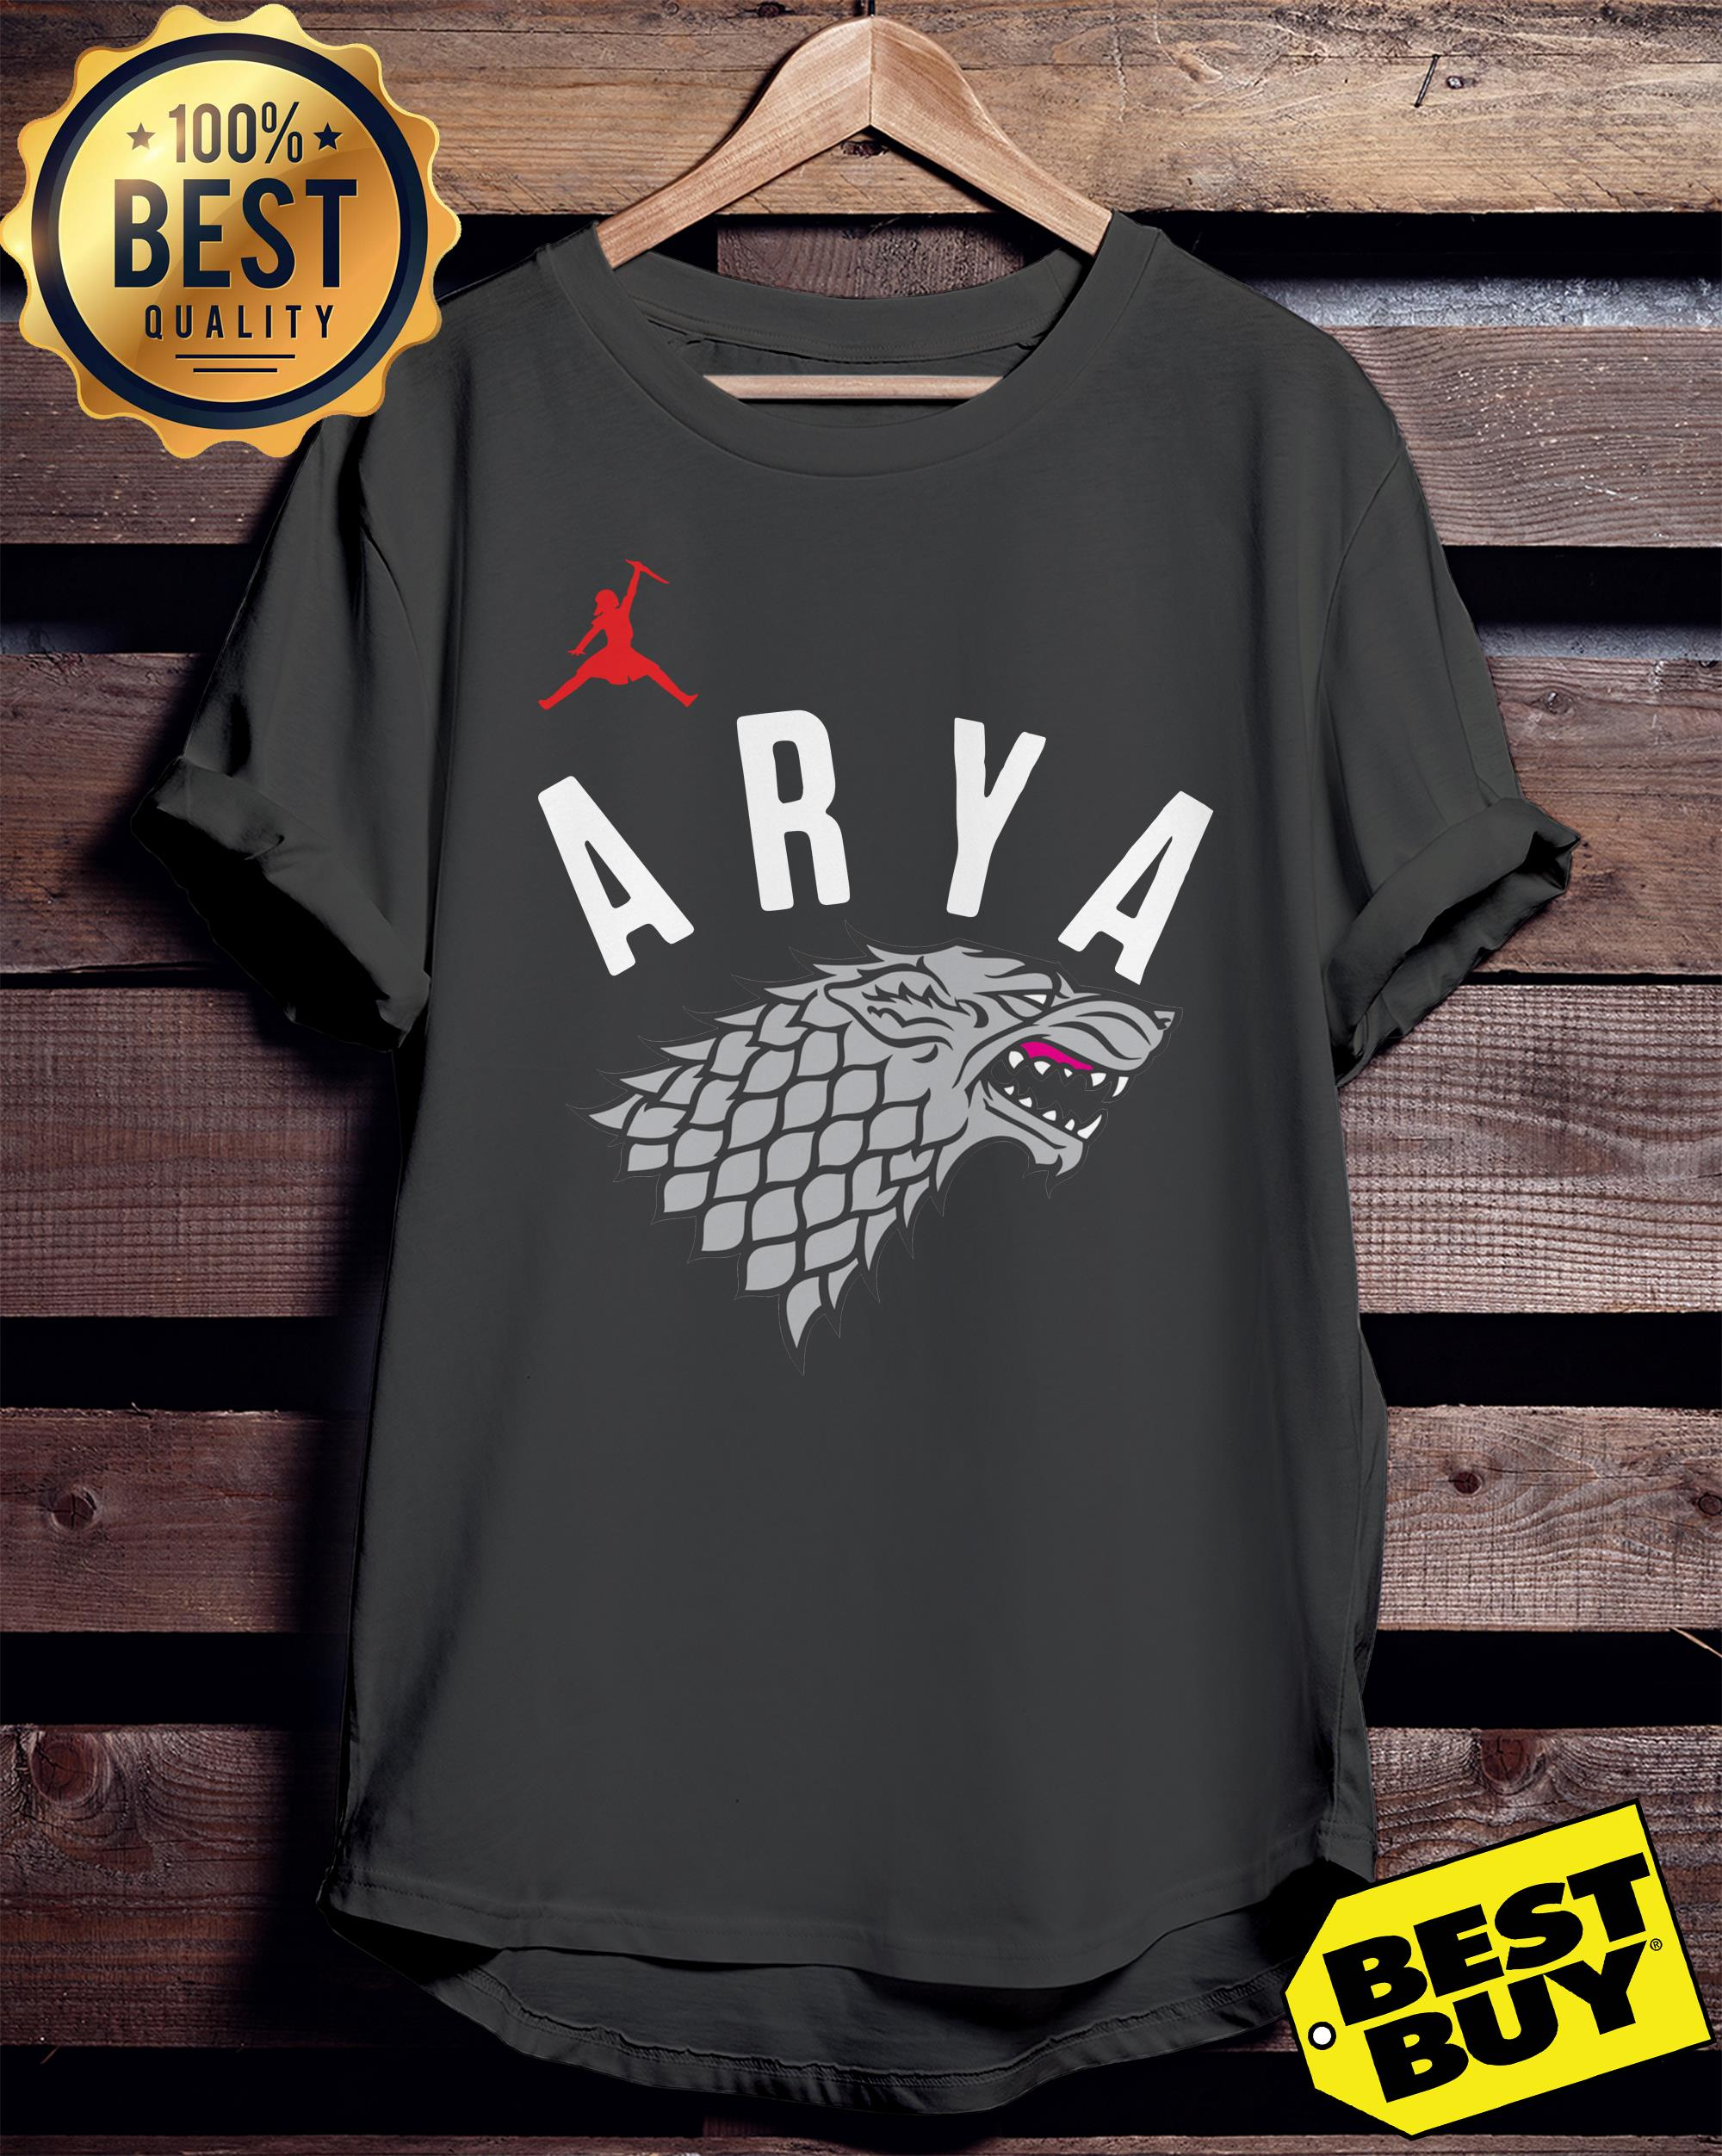 Arya Stark Game of Thrones Silver Foil ladies tee